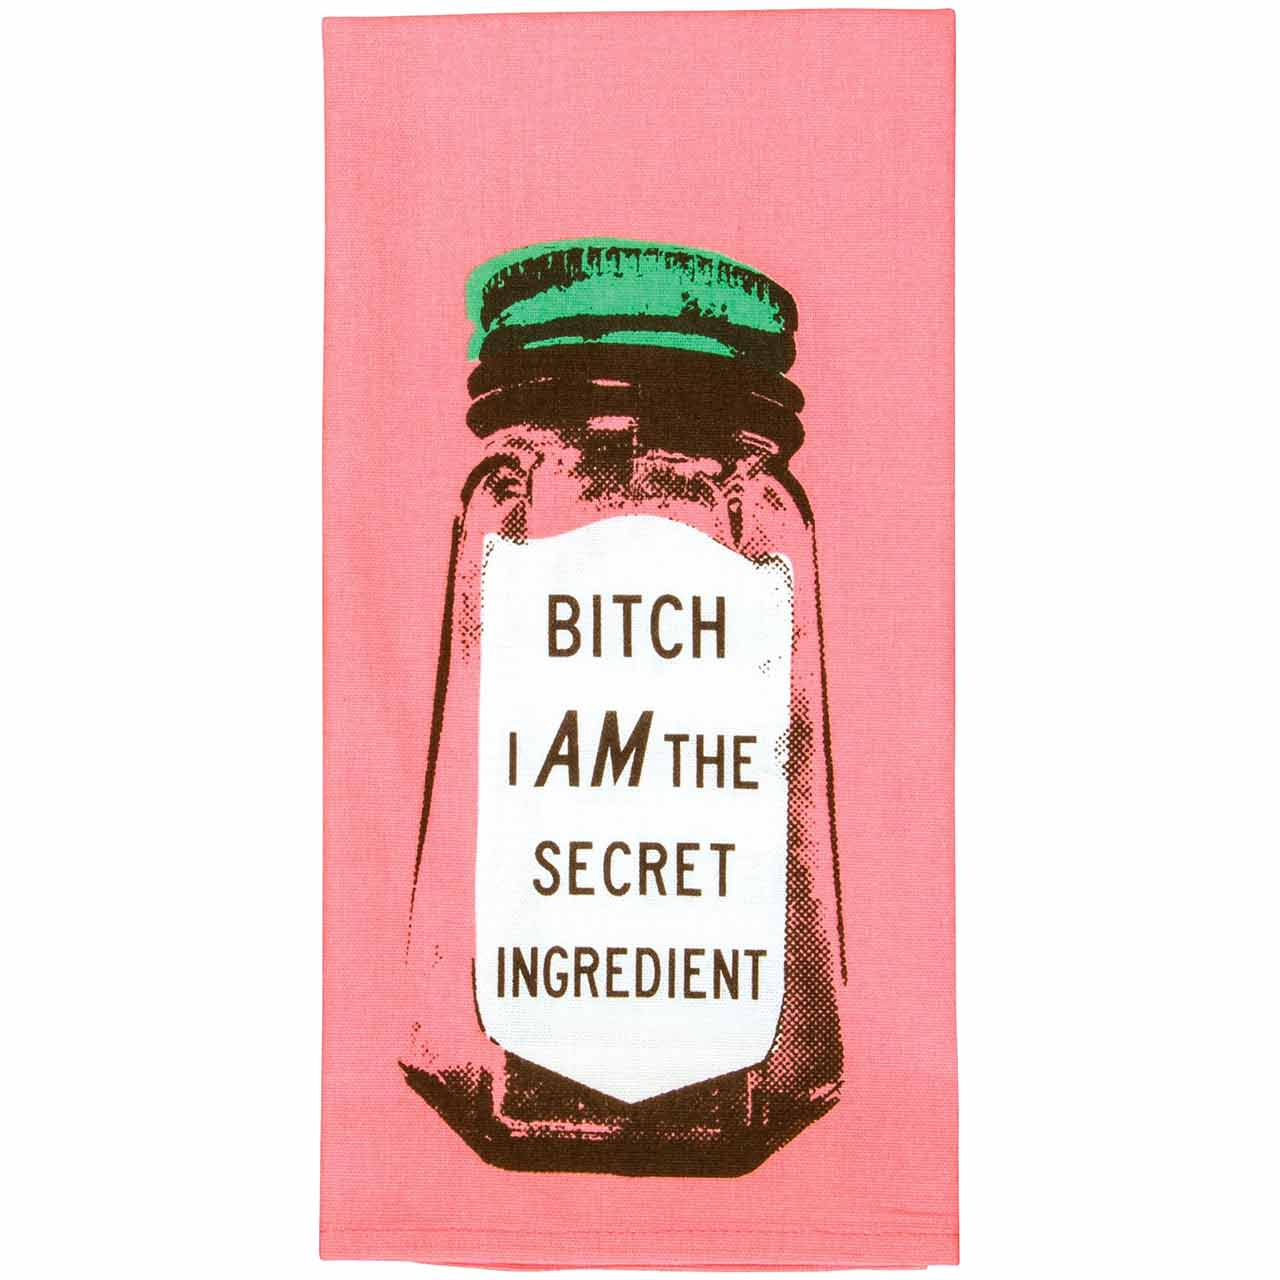 'Bitch I am the secret ingredient' Dish Towel by Blue Q  | The Design Gift Shop